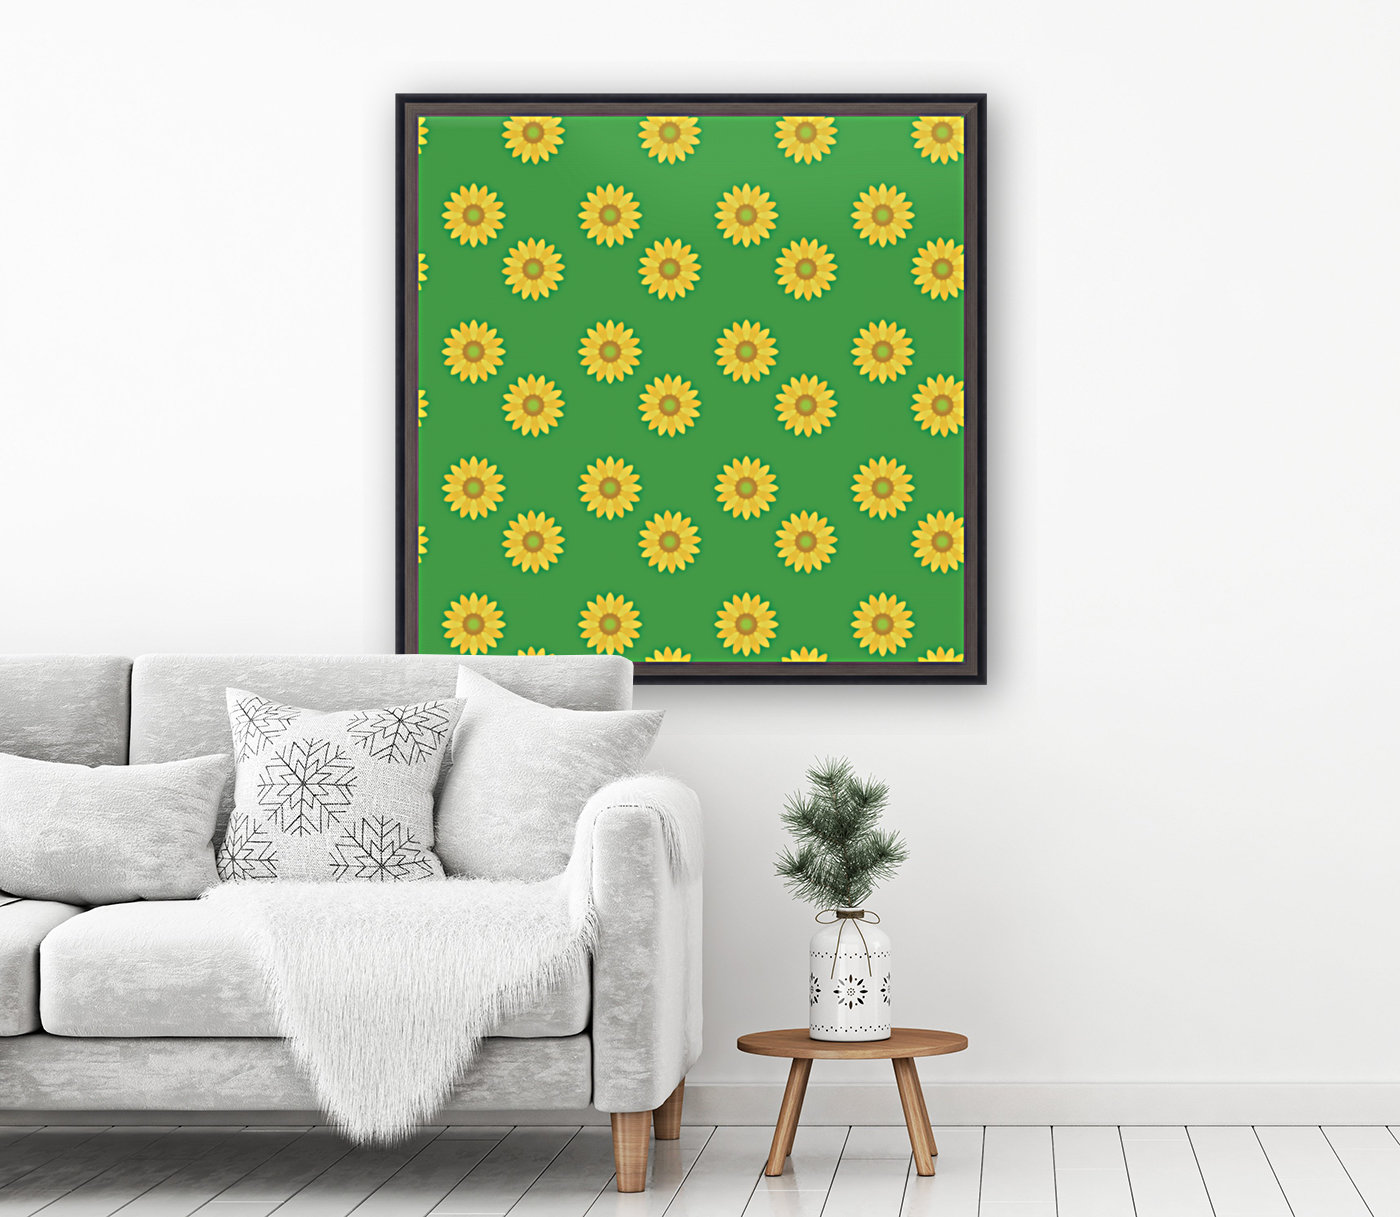 Sunflower (38)_1559876736.7714 with Floating Frame